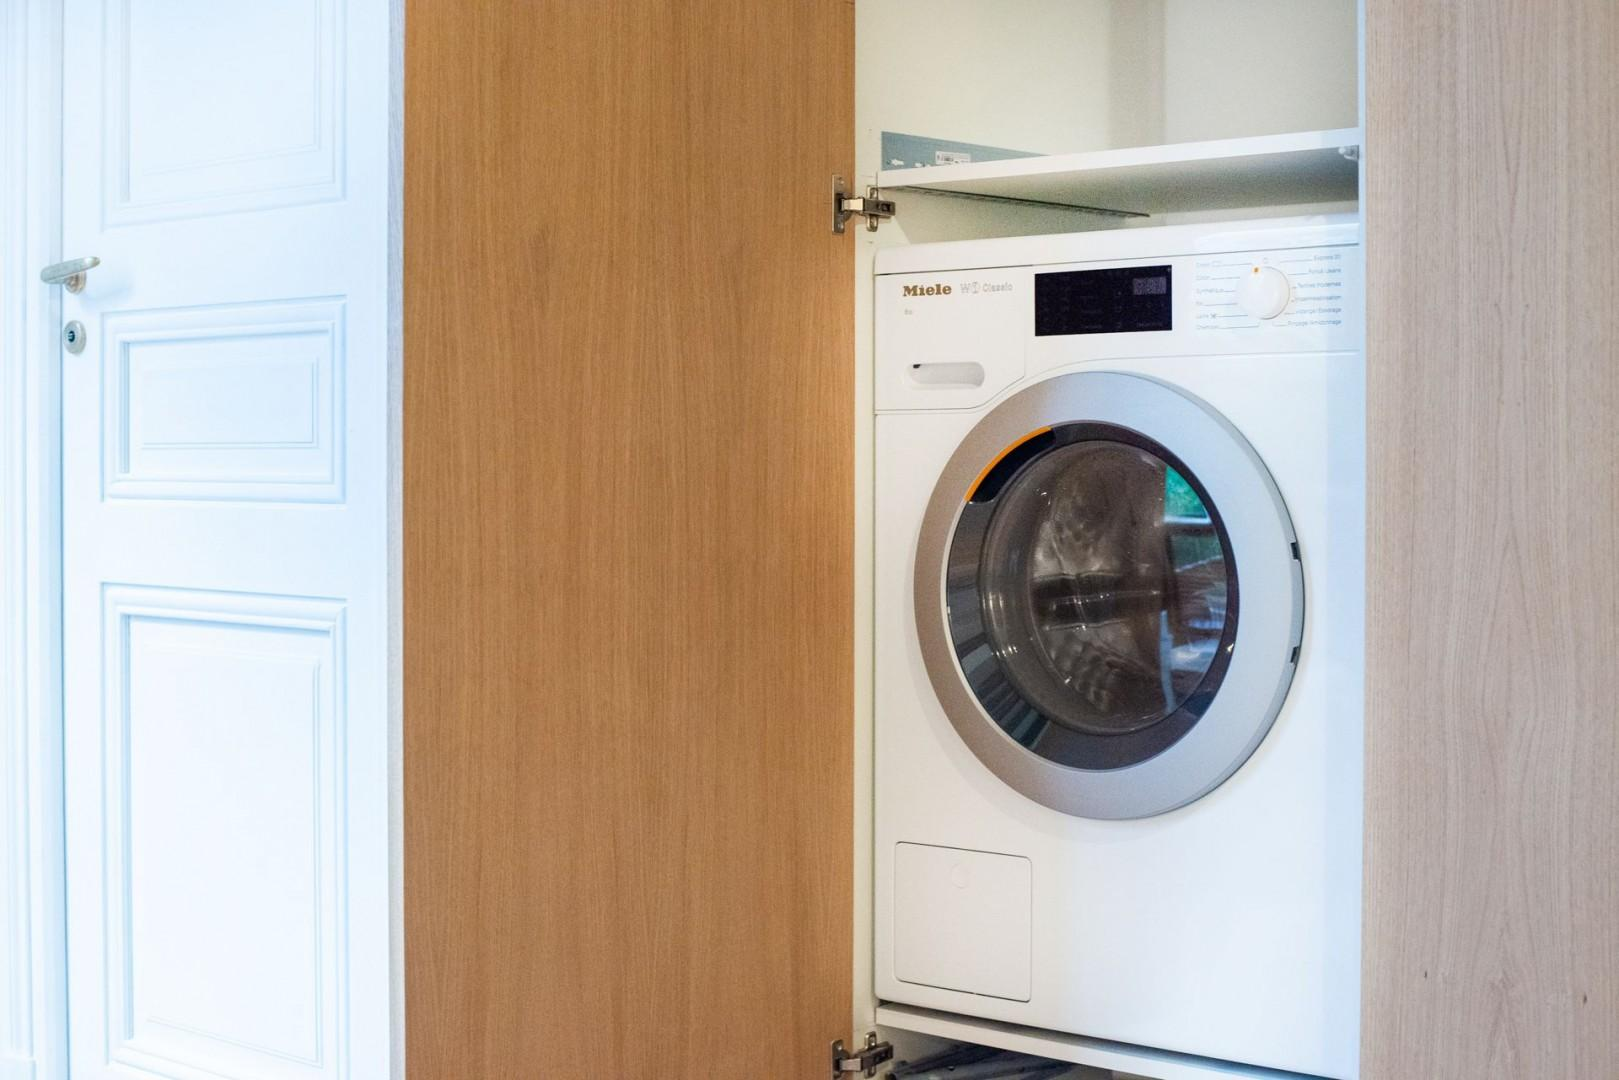 The closet hides a Miele washer and dryer.